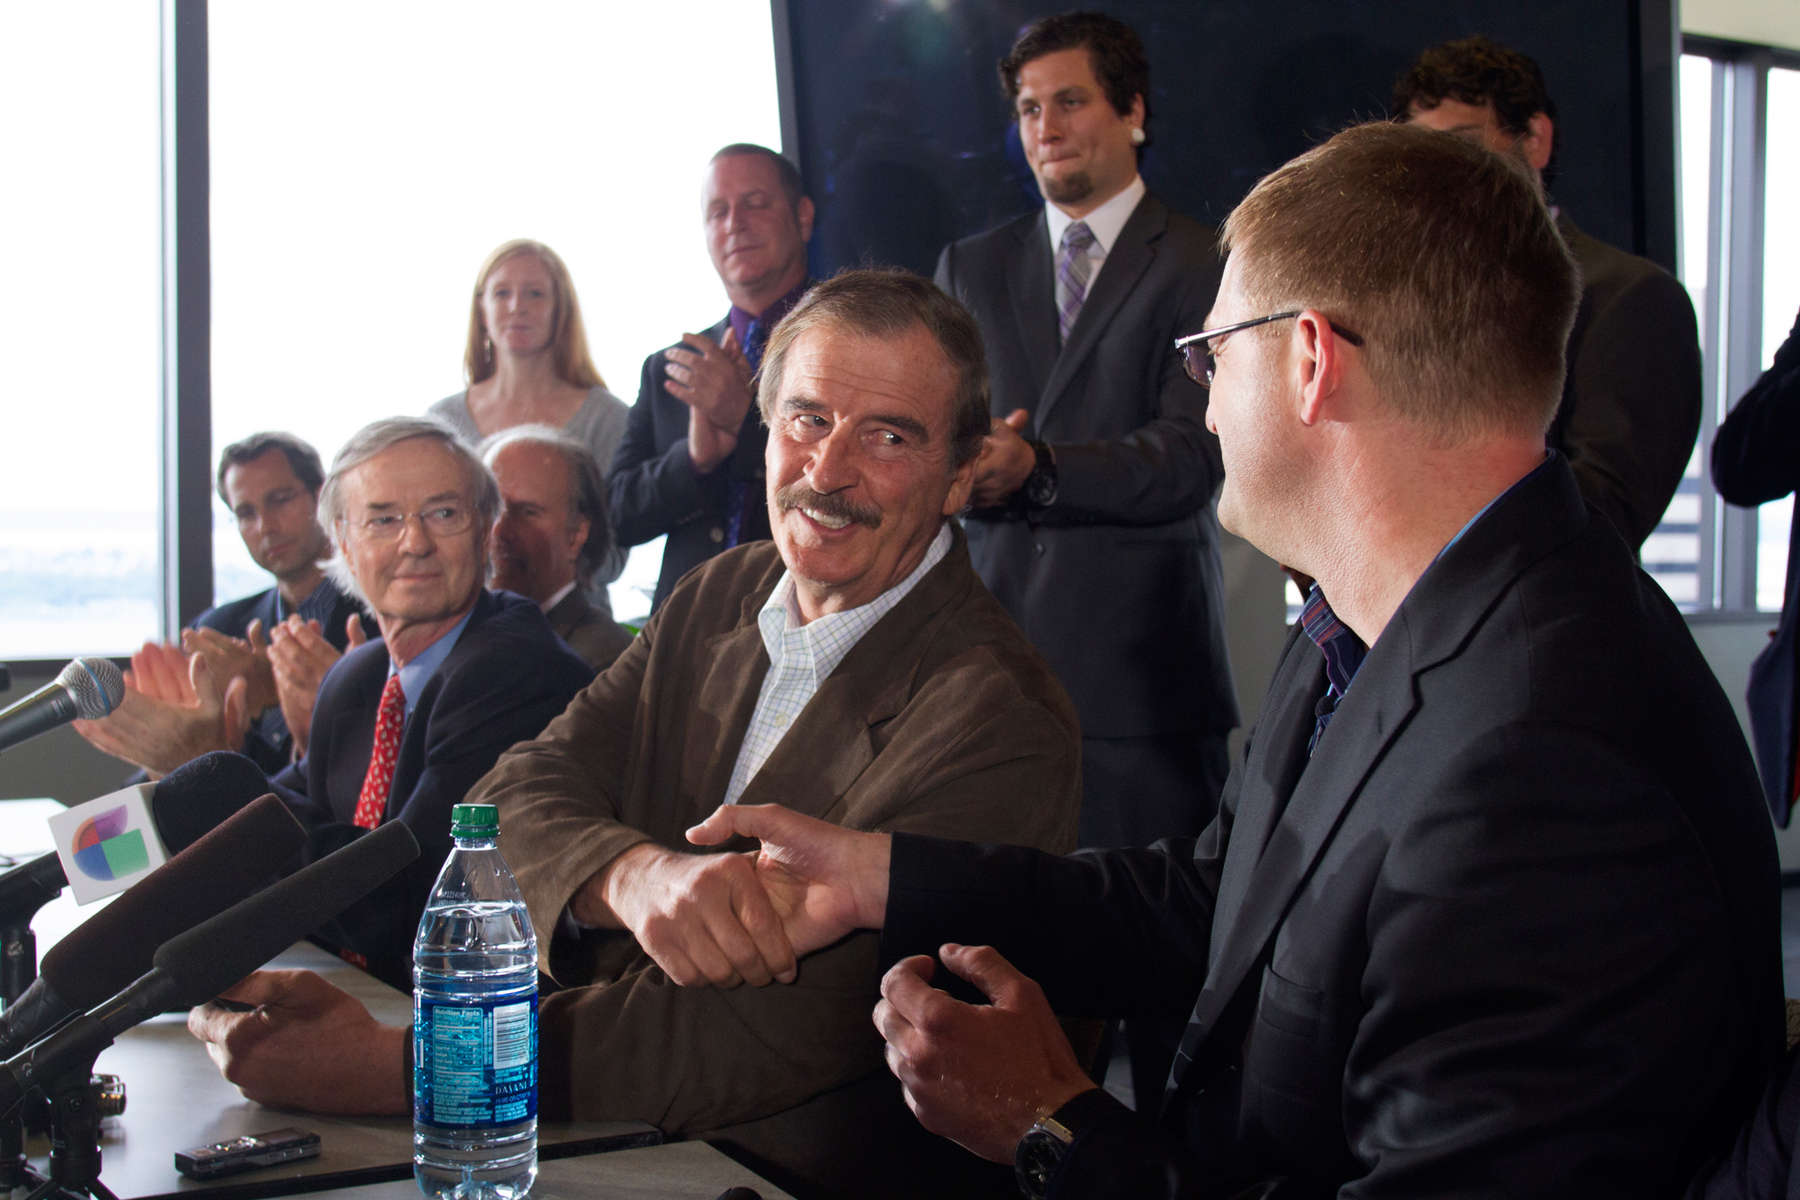 Former Mexican President Vicente Fox (left) shakes hands with  Jamen Shively, (right) Founder and CEO of Diego Pellicer, Inc. during a press conference with other marijuana industry leaders in the Columbia Tower, in Seattle, Wash. on May 30, 2013.